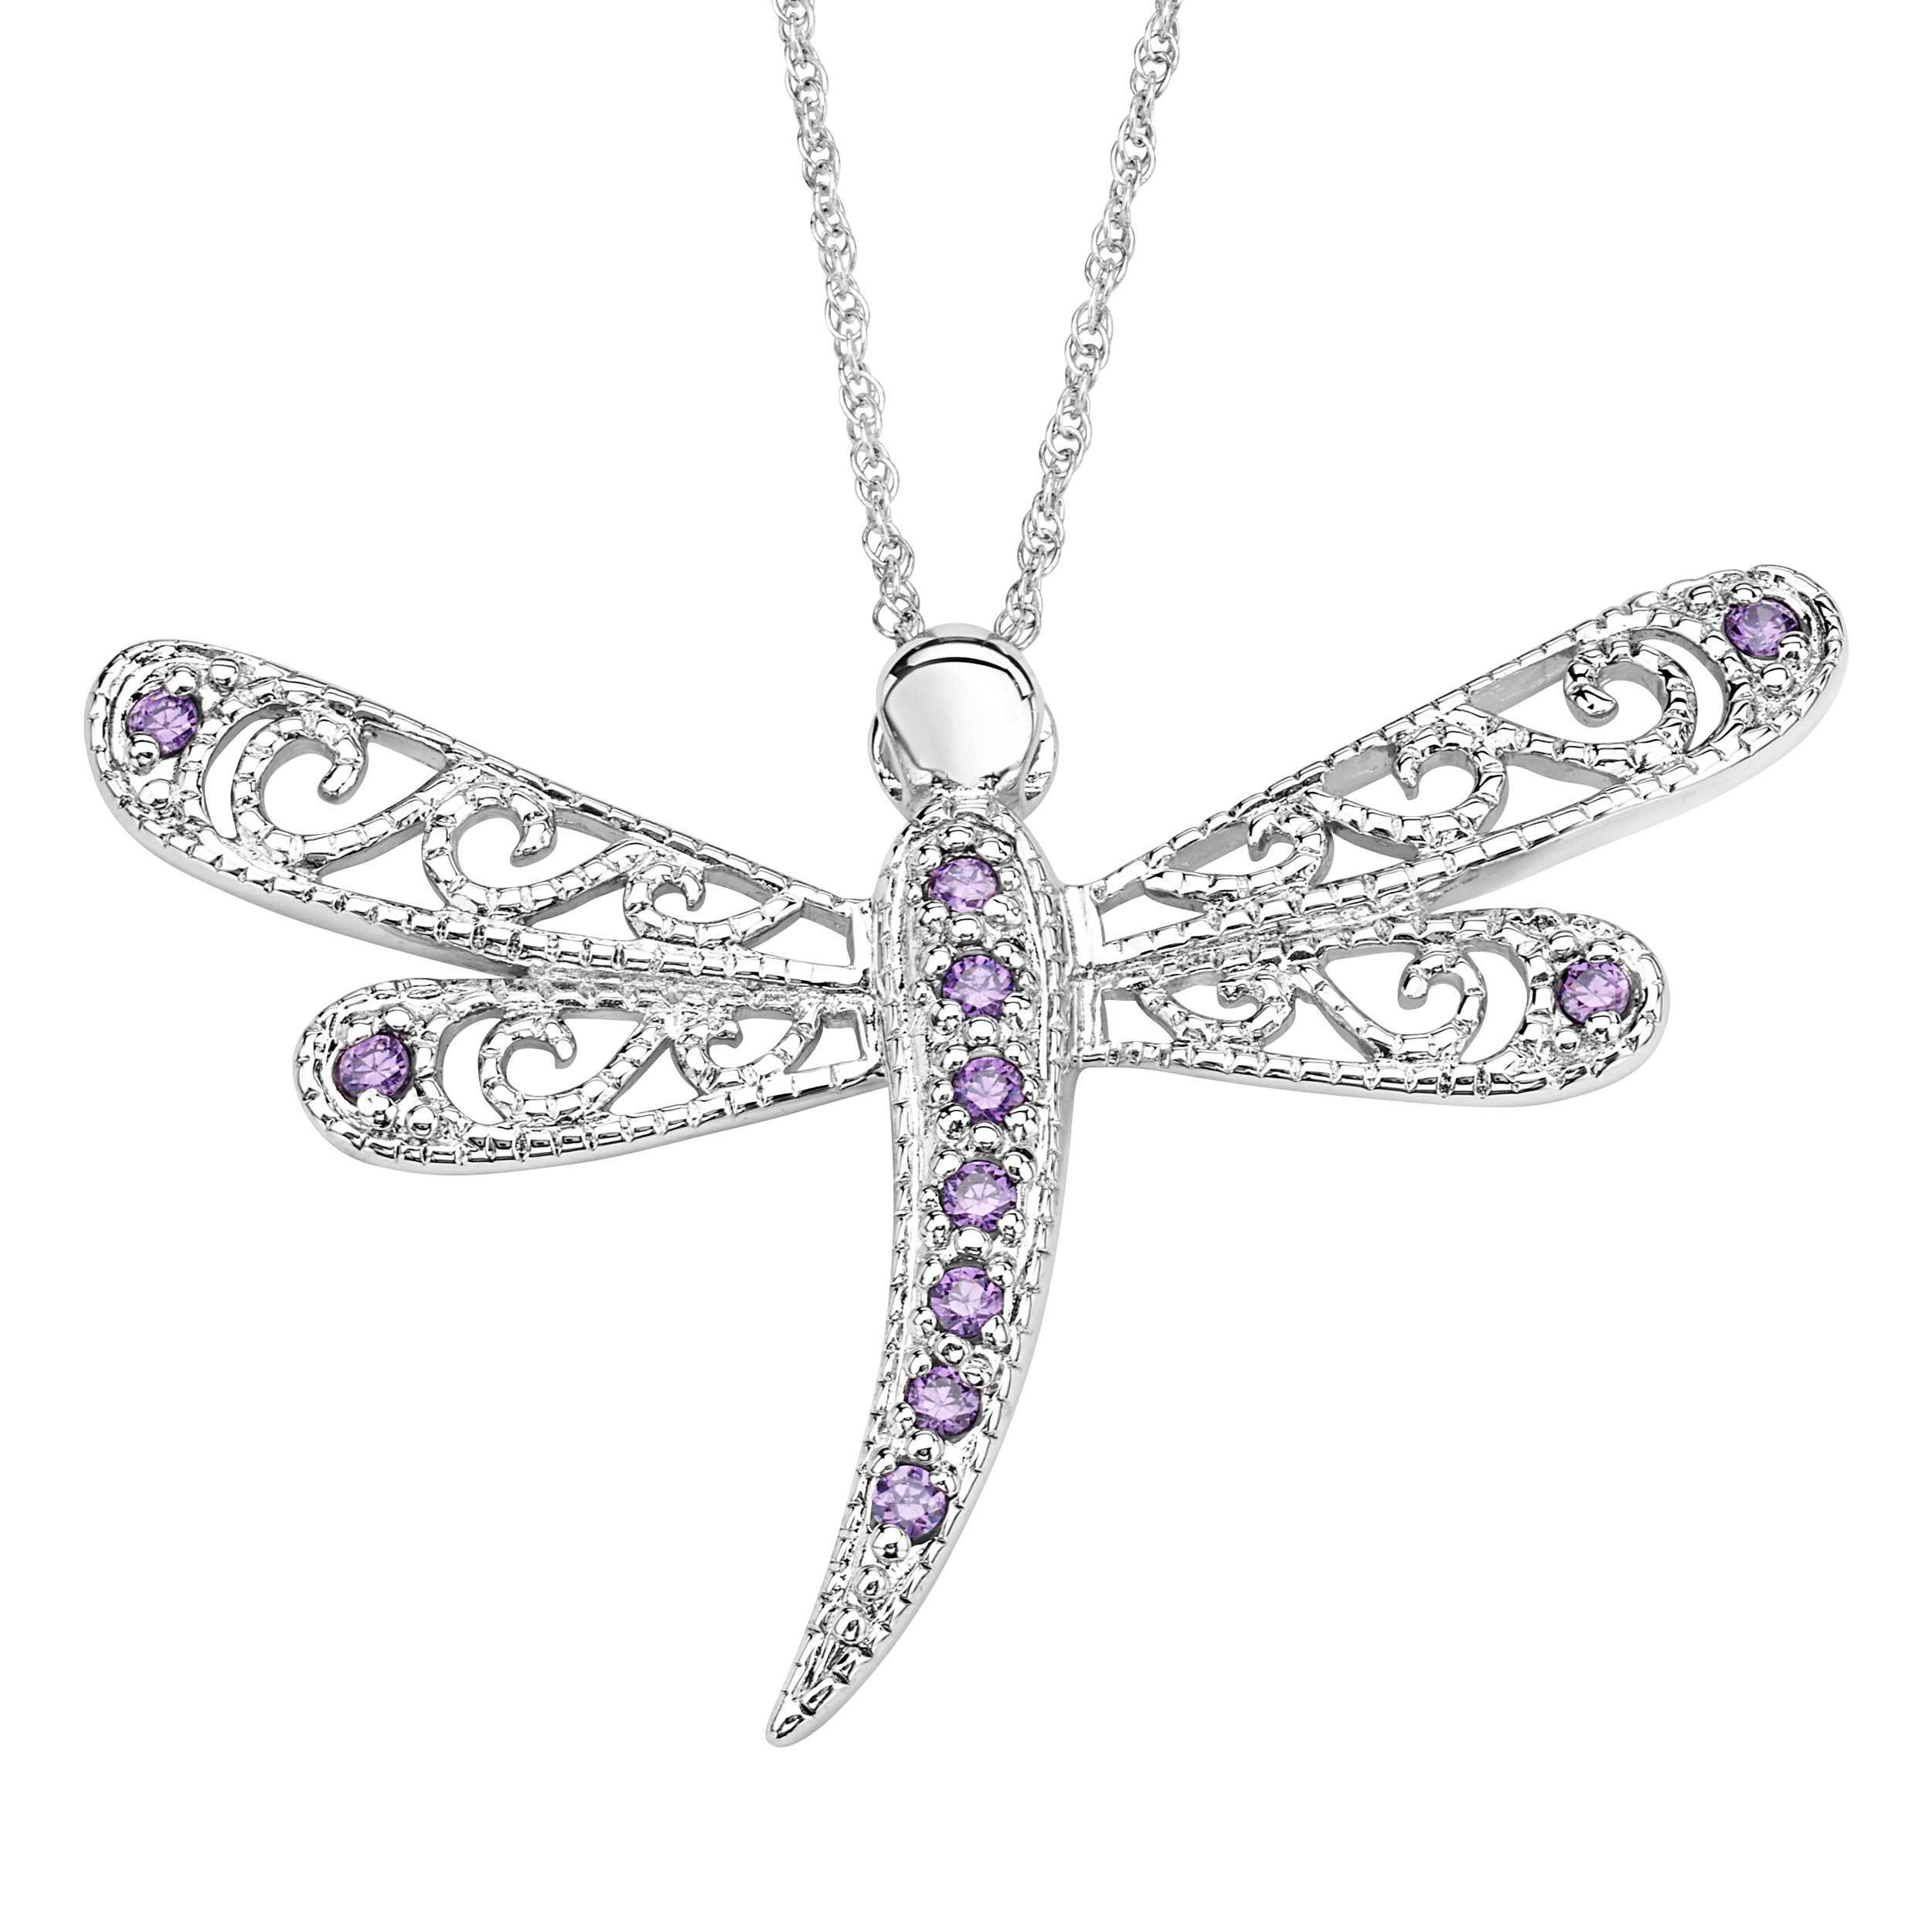 sizes 6-9 Sterling Silver Cubic Zirconia Dragonfly Ring Micro Pave